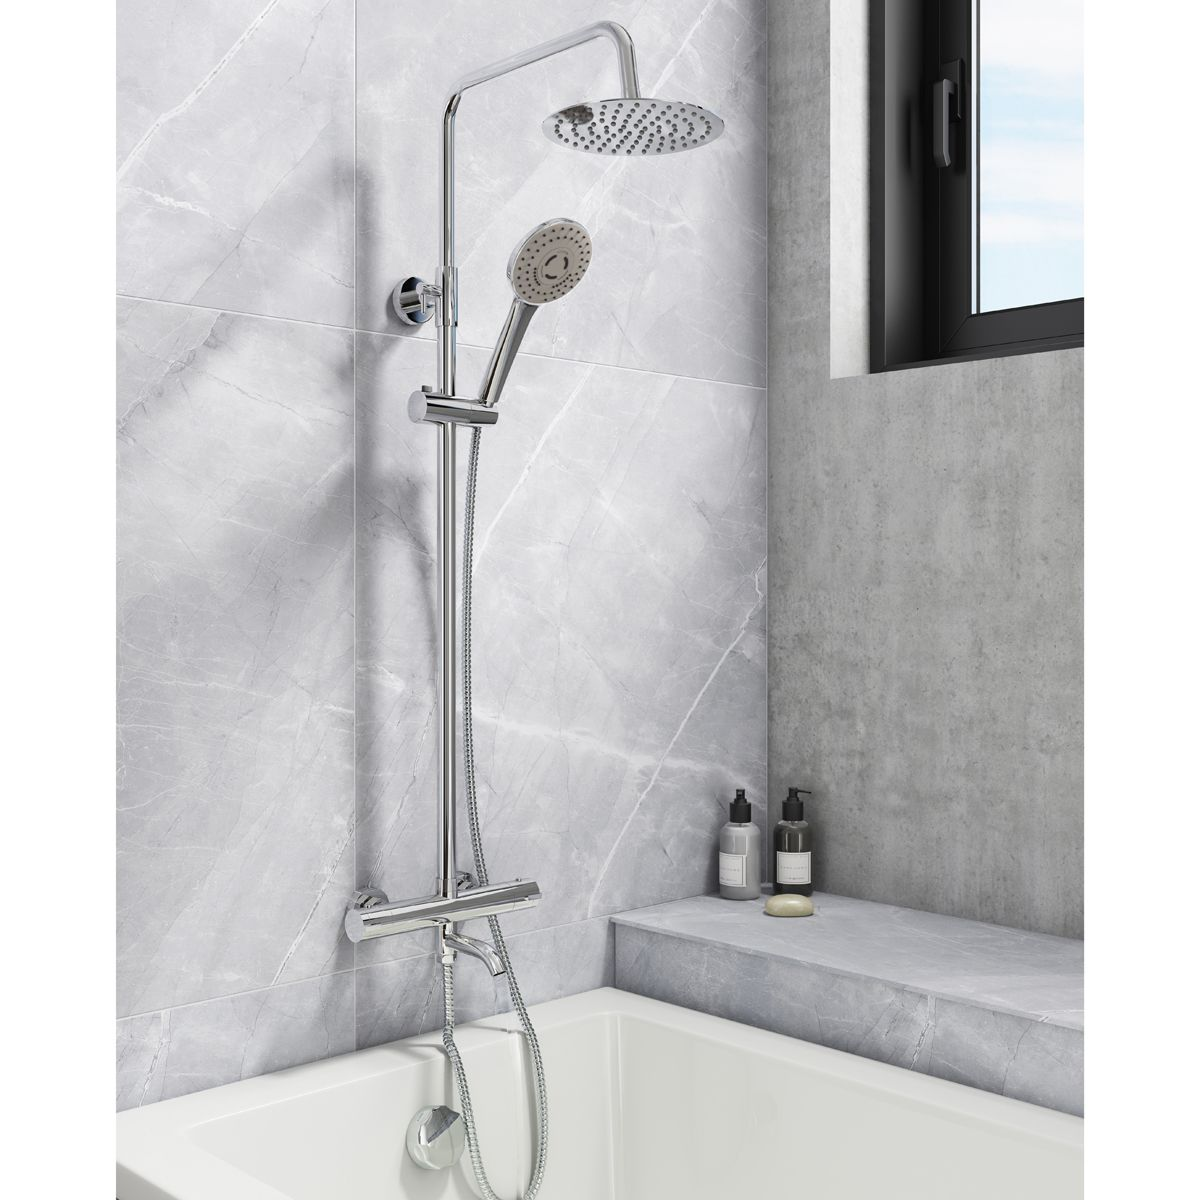 Cassellie Santana Thermostatic Bath Filler Shower Kit Lifestyle